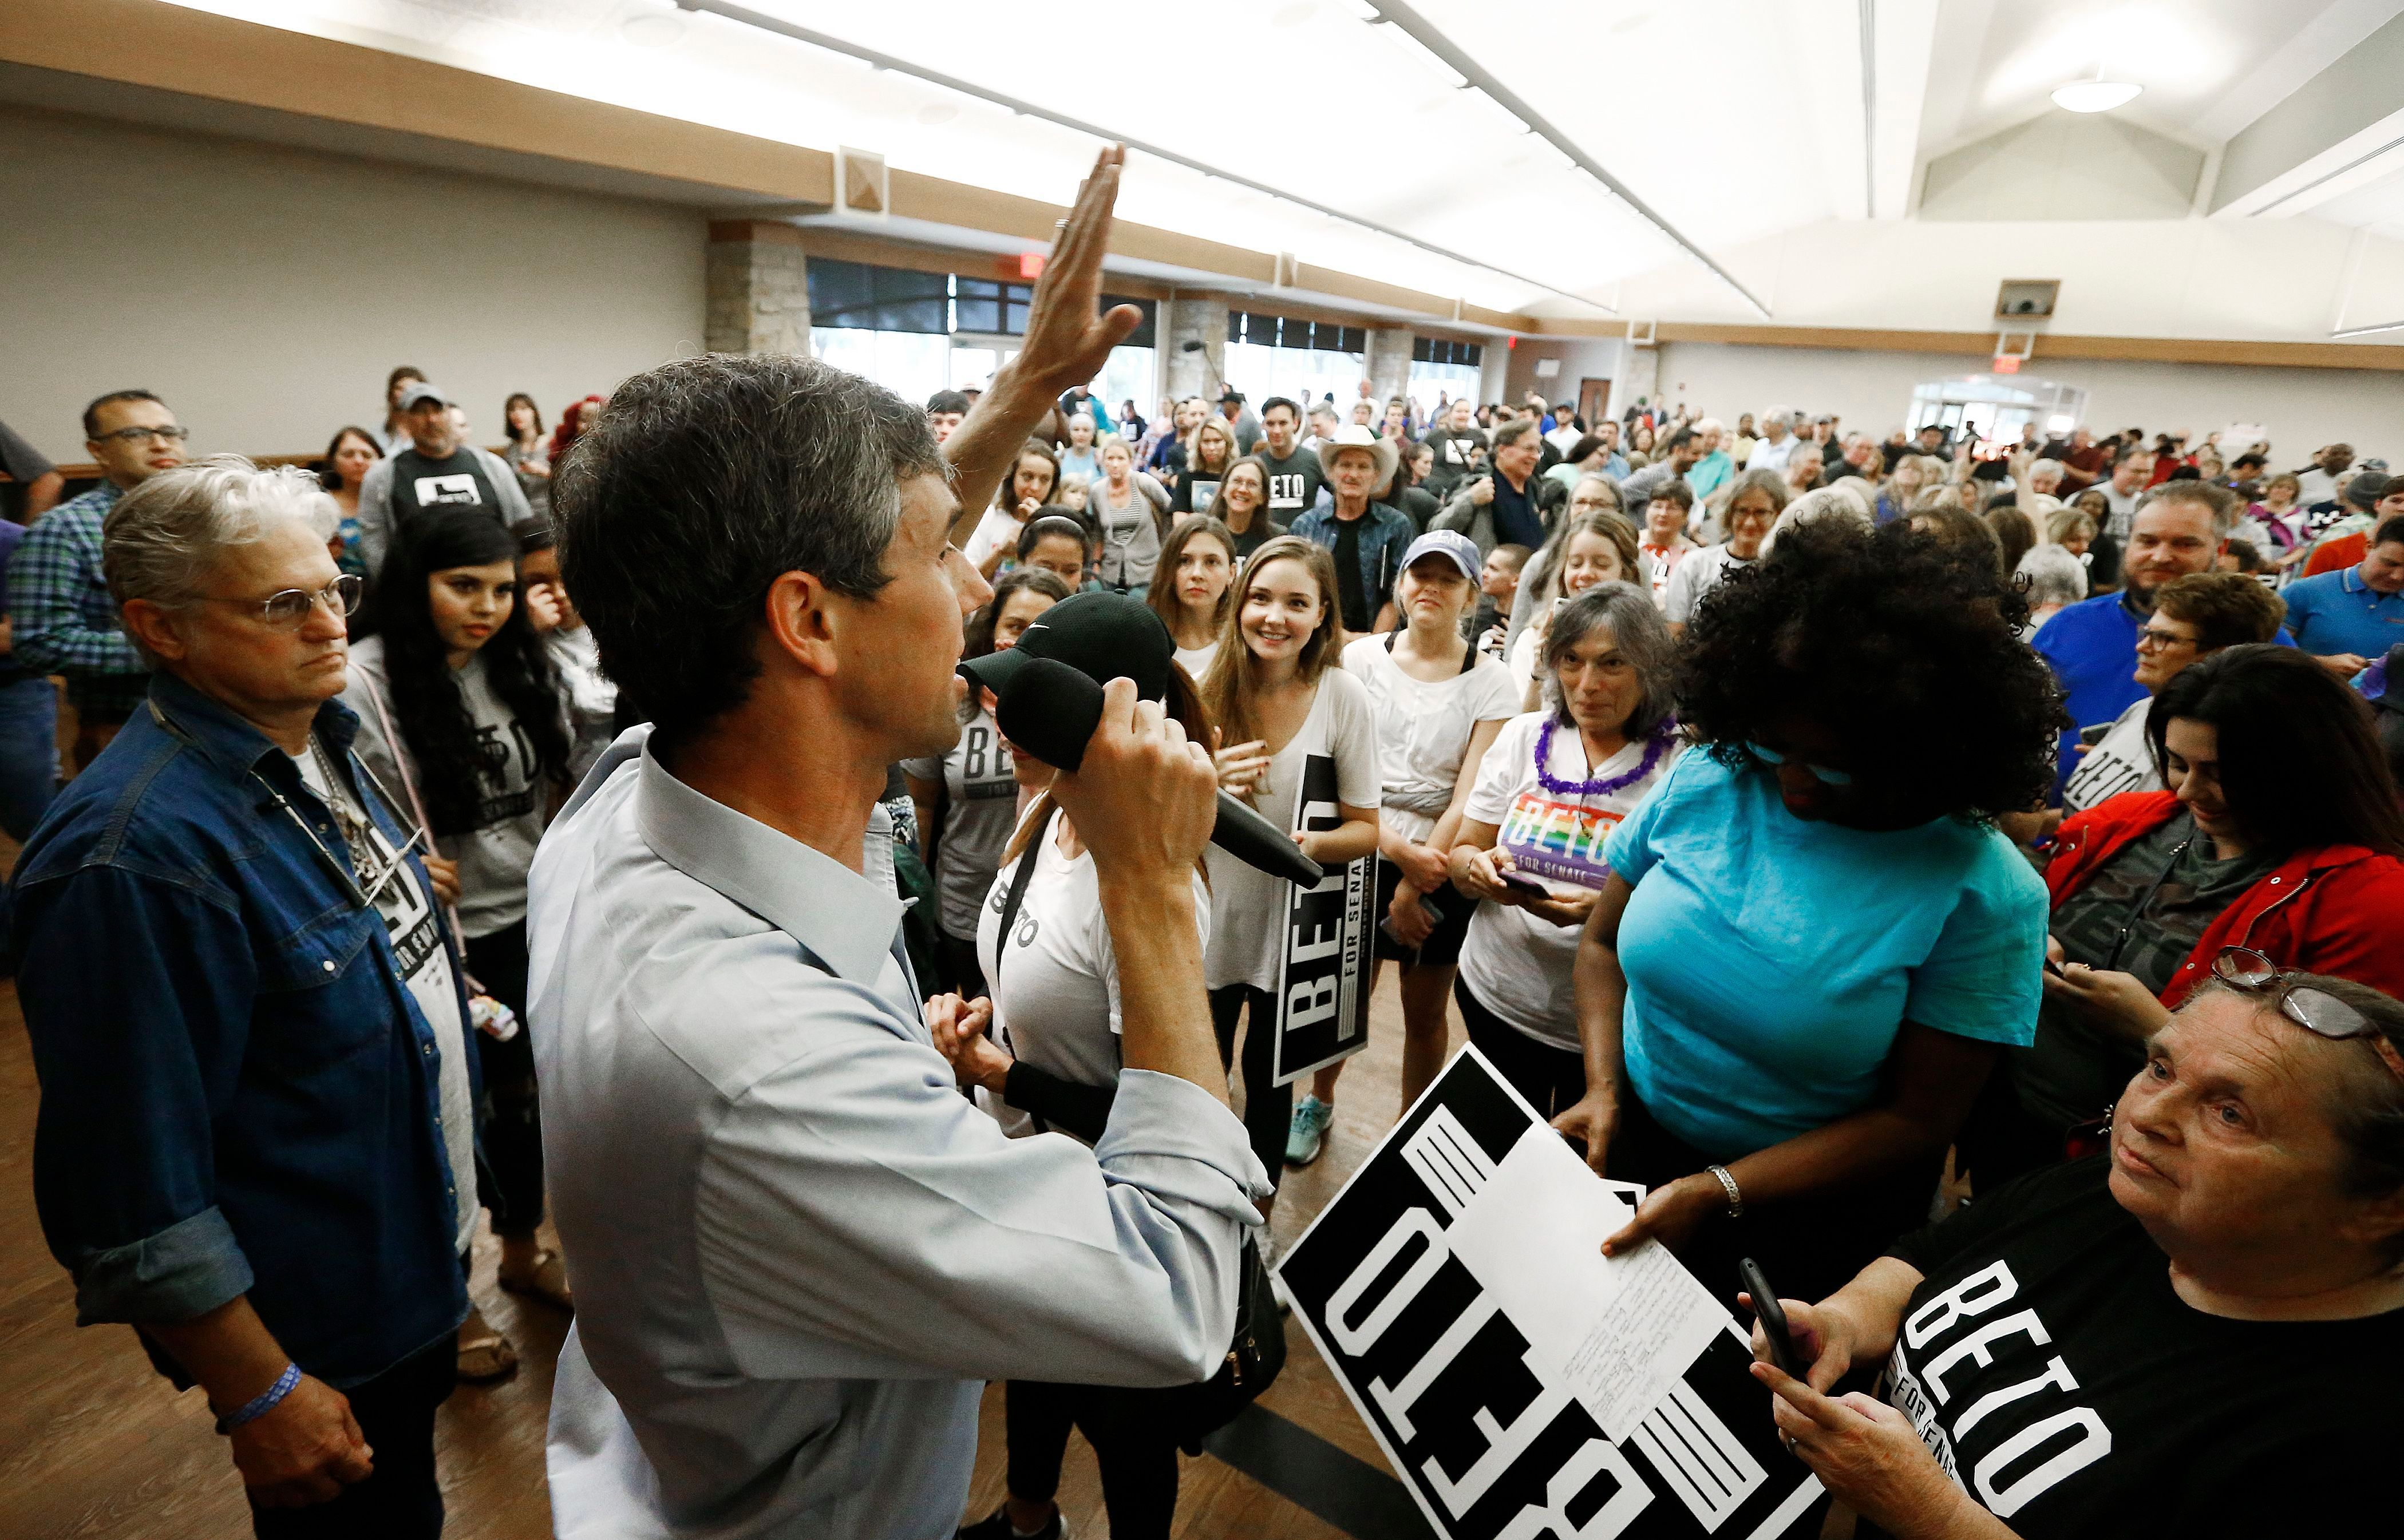 US Senator Beto O'Rourke (L) speaks to fans on a rally inside Knox Hall at the Hall of Fame and Texas Ranger Museum in Waco, Texas, USA, on October 31, 2018. Beto Rouke runs against Senator Ted Cruz for the Senate. US Senate candidate Beto O'Rourke talks with supporters on a Rally, Waco, USA - October 31, 2018